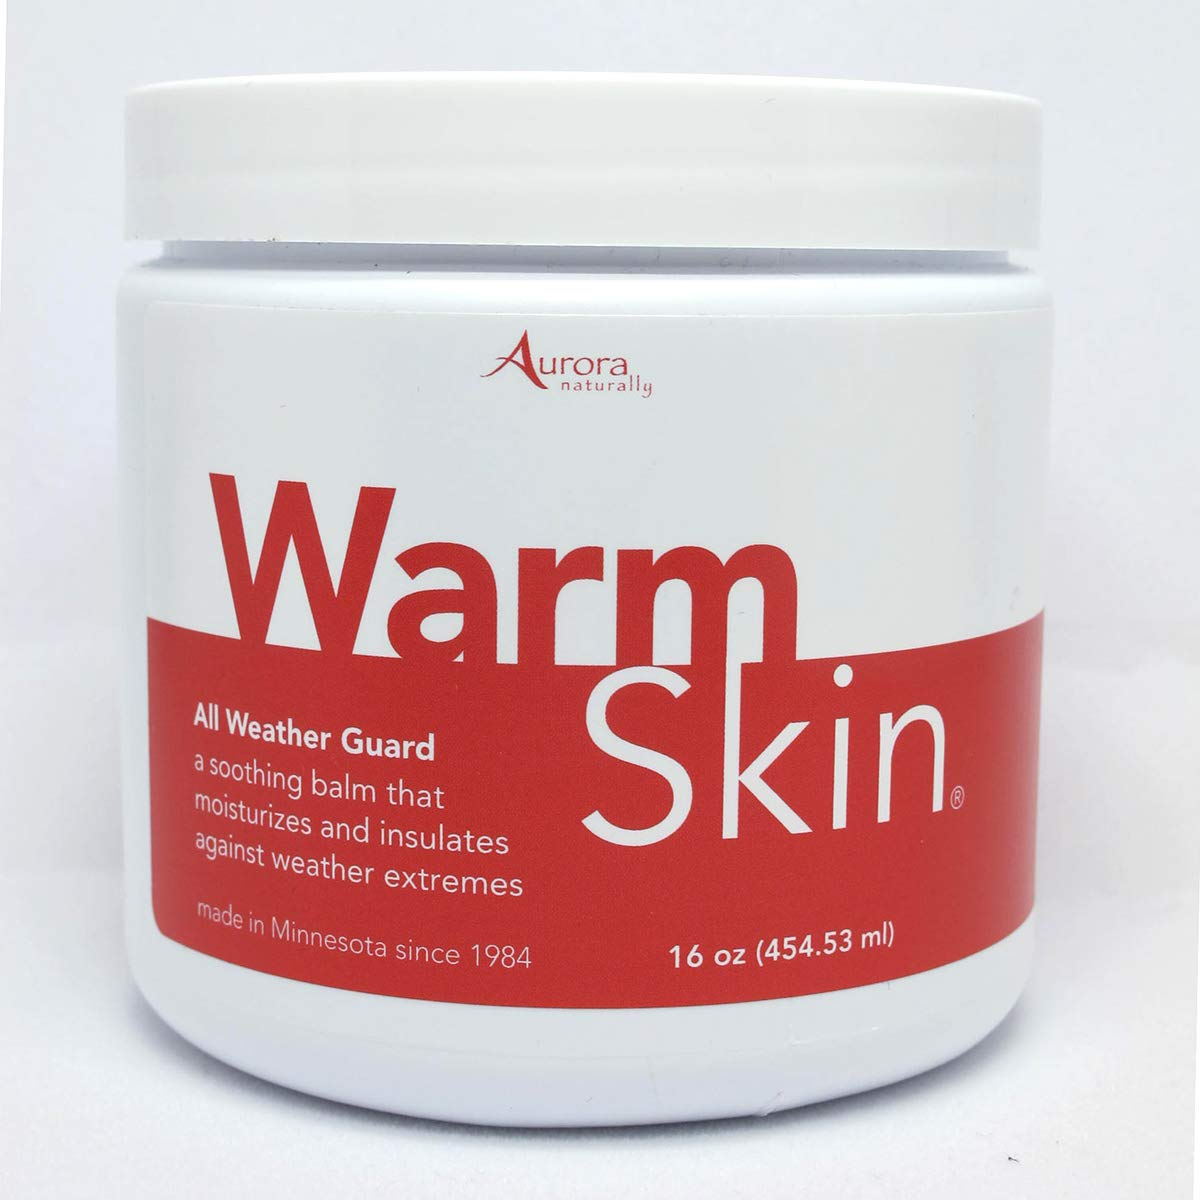 Warm Skin All Weather Safety and trust Limited time trial price Guard - Cream Great Barrier for Cold